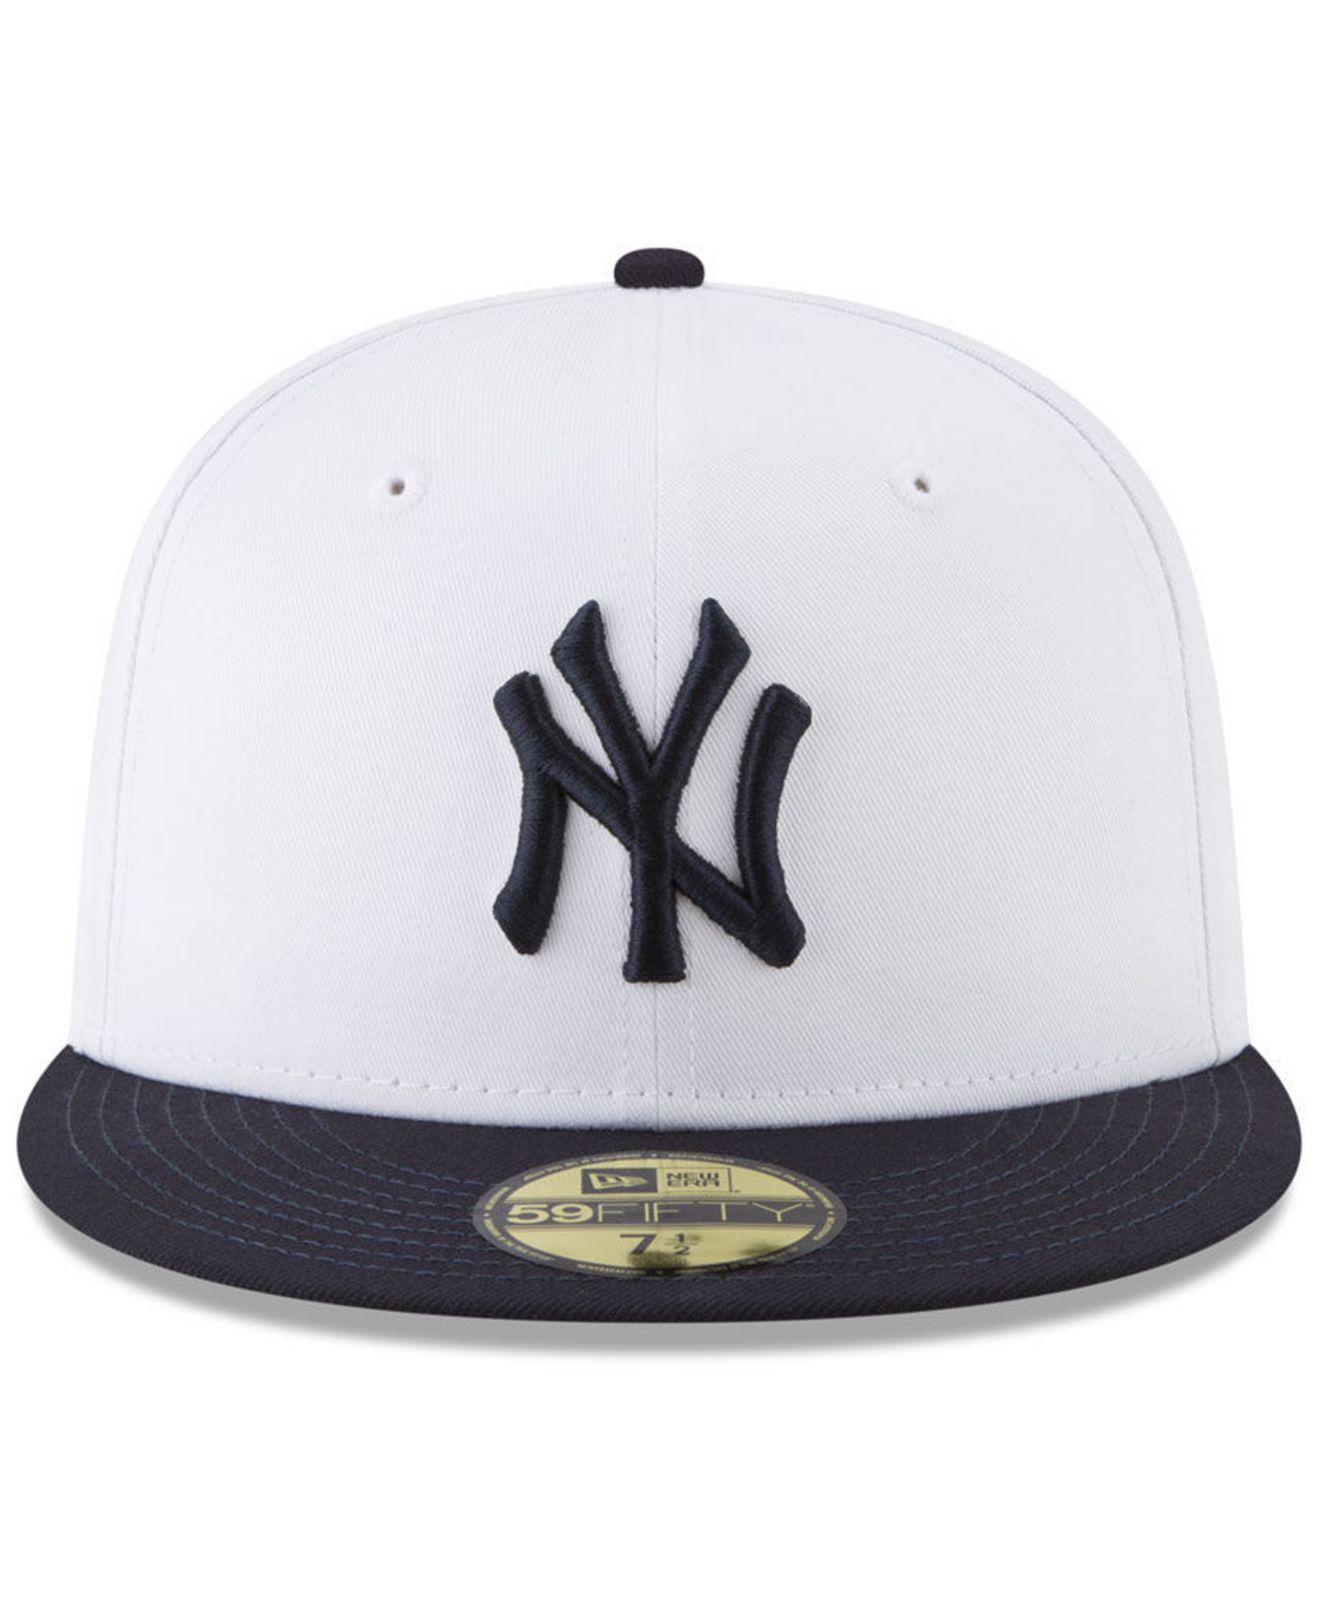 Lyst - Ktz New York Yankees Batting Practice Wool Flip 59fifty Fitted Cap  in White for Men dfe49f2519ad